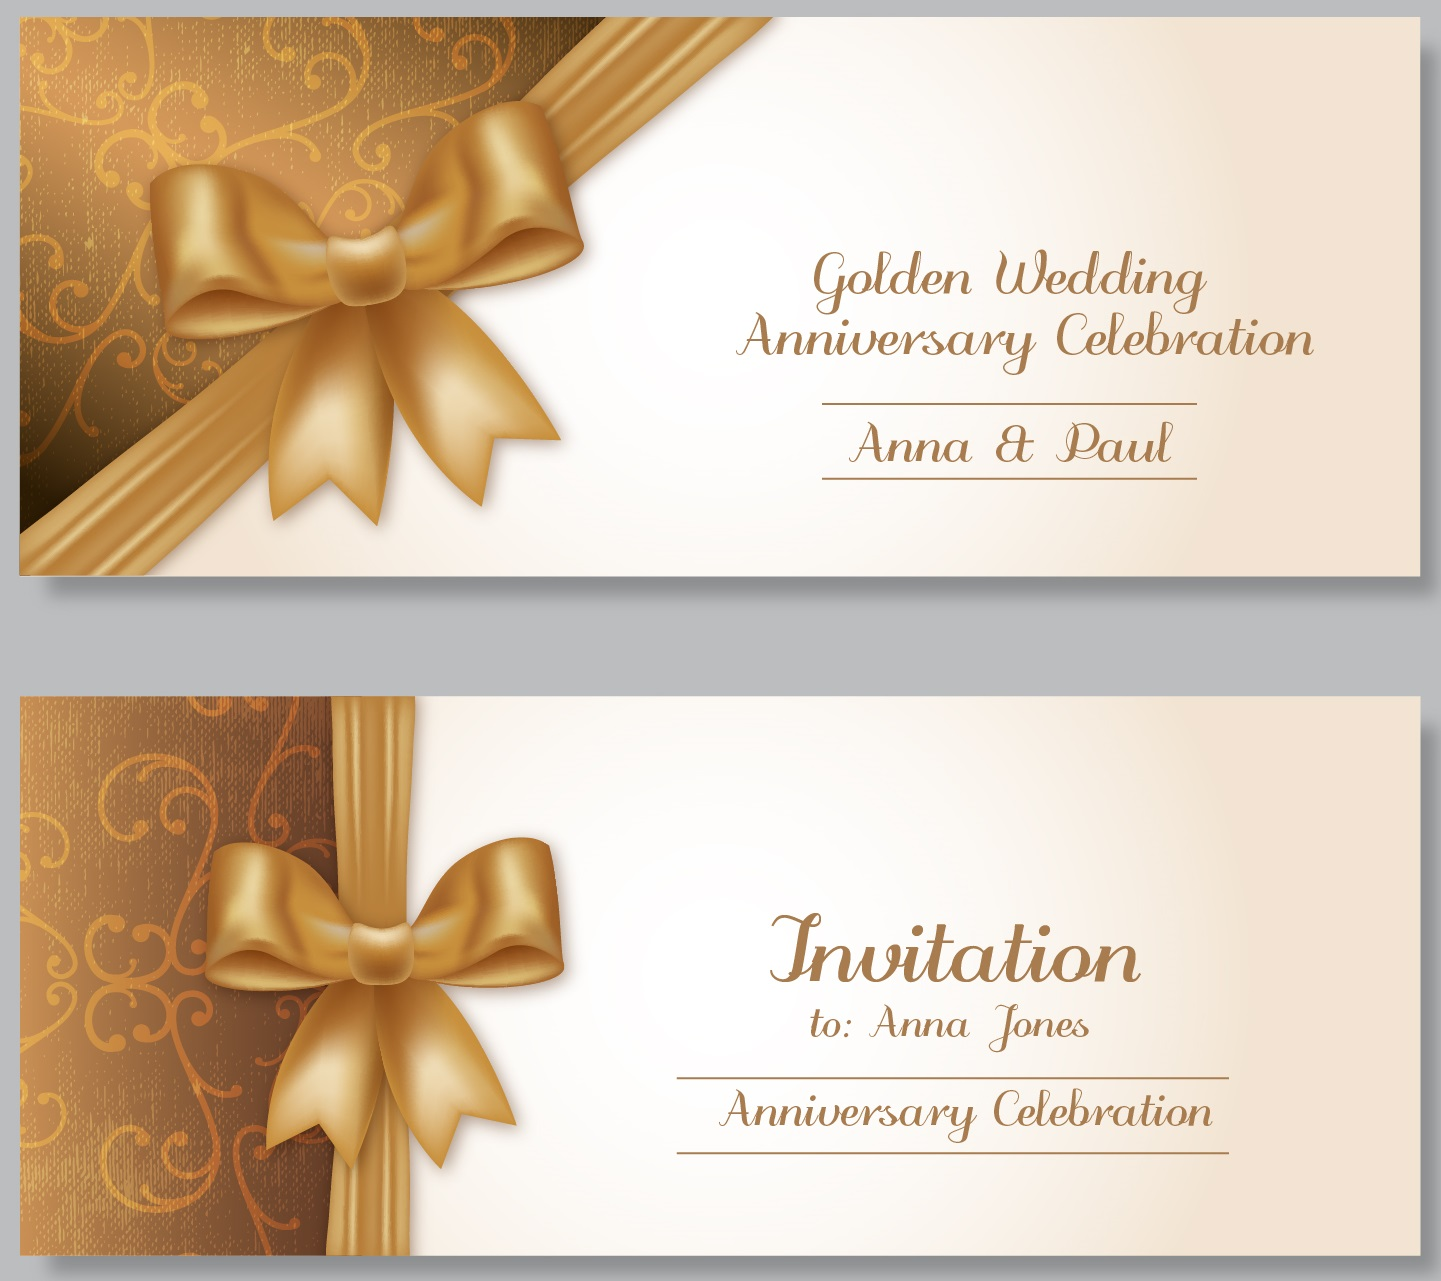 9 free sample anniversary party invitation templates printable here is preview of another sample anniversary party invitation template created using ms word stopboris Image collections